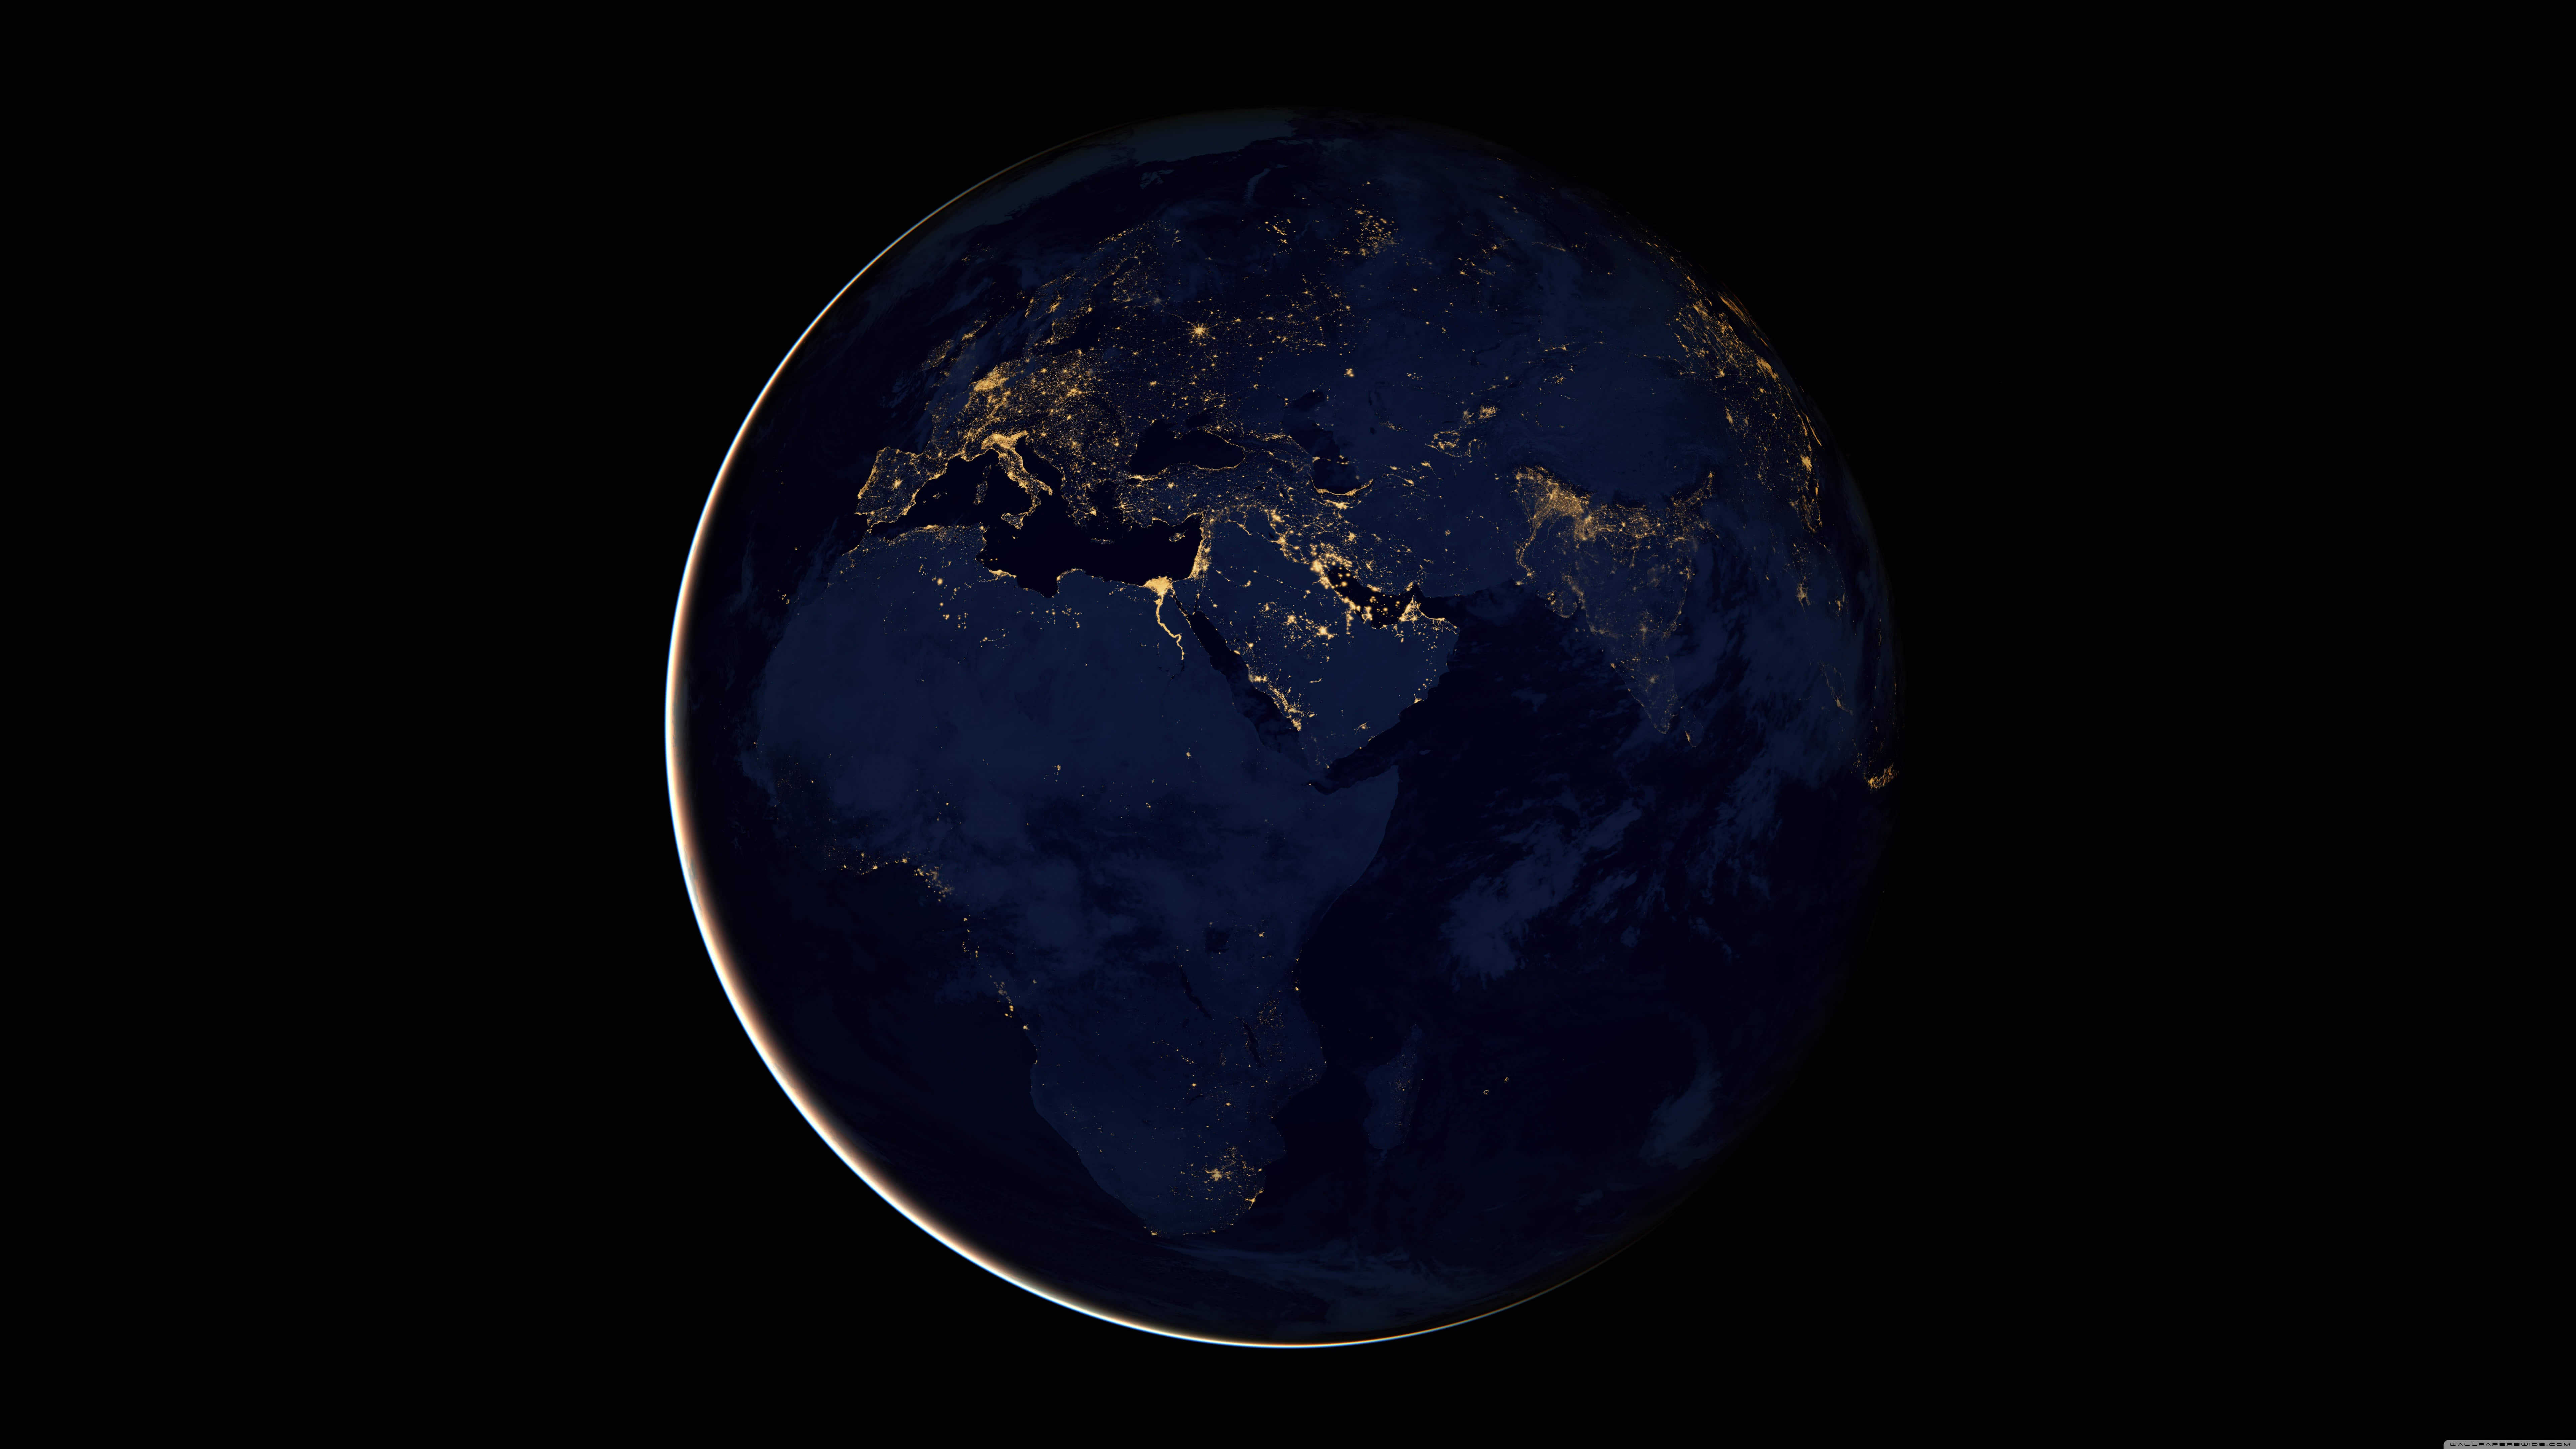 7680x4320 Black Marble Africa Europe And The Middle East UHD 8K Wallpaper   Pixelz